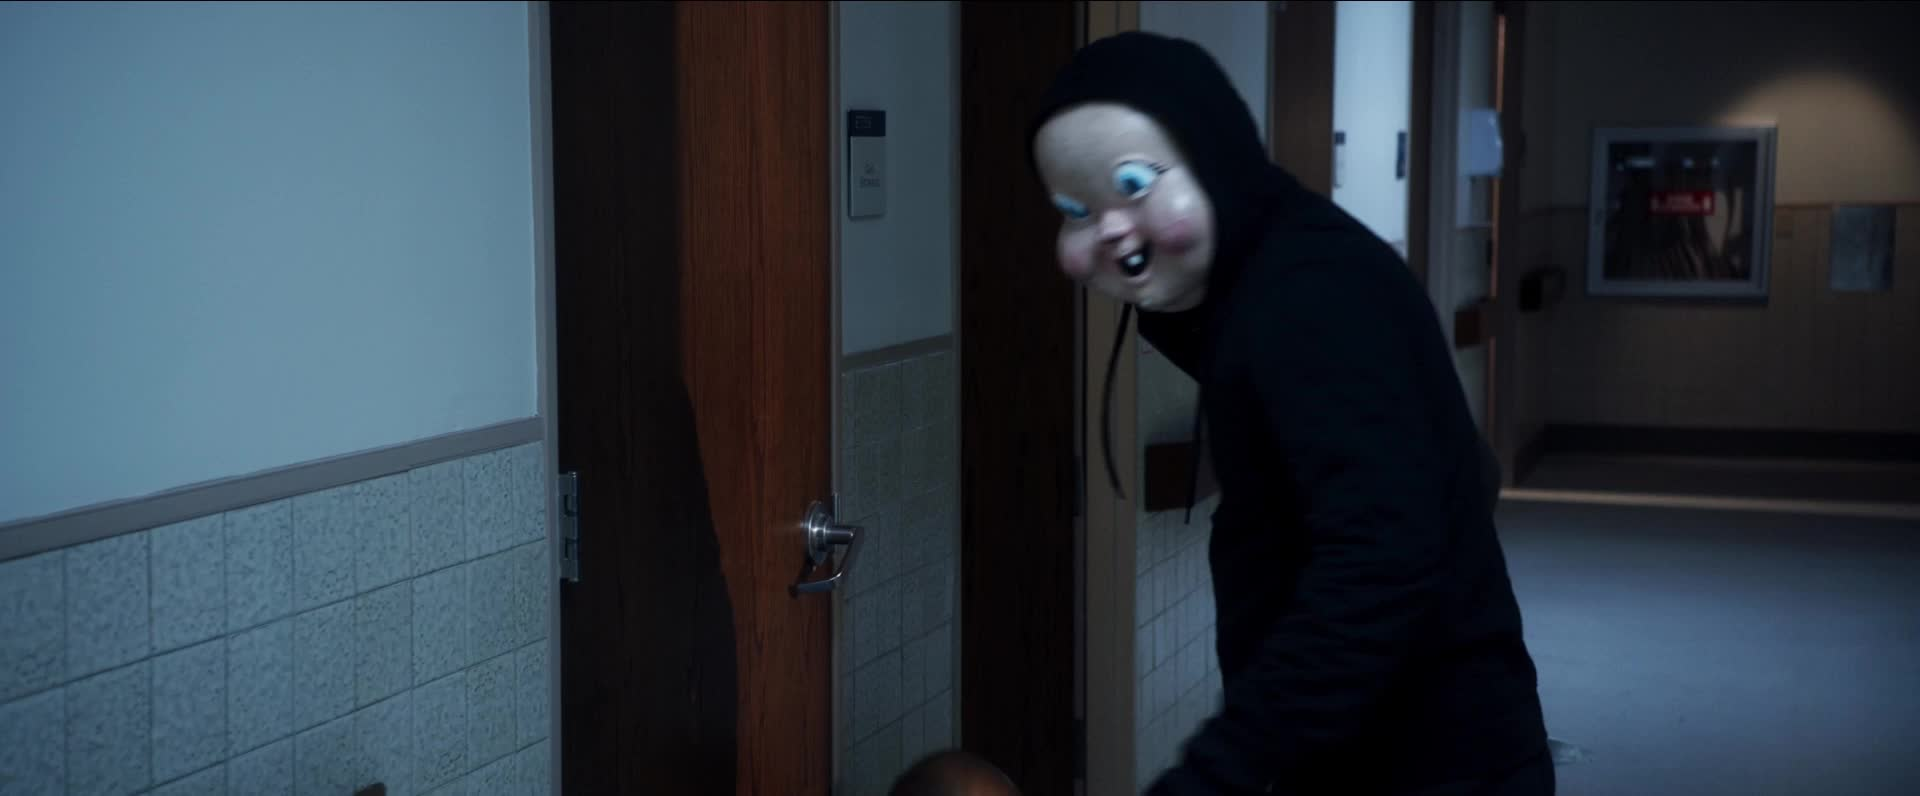 baby face, baby face killer, baby face mask, babyface, babyface killer, creepy, happy death day, happy death day 2, happy death day 2u, happy death day movie, happydeathday, hdd, hdd2u, horror, scared, scary, surprise, Baby Mask Surprise GIFs